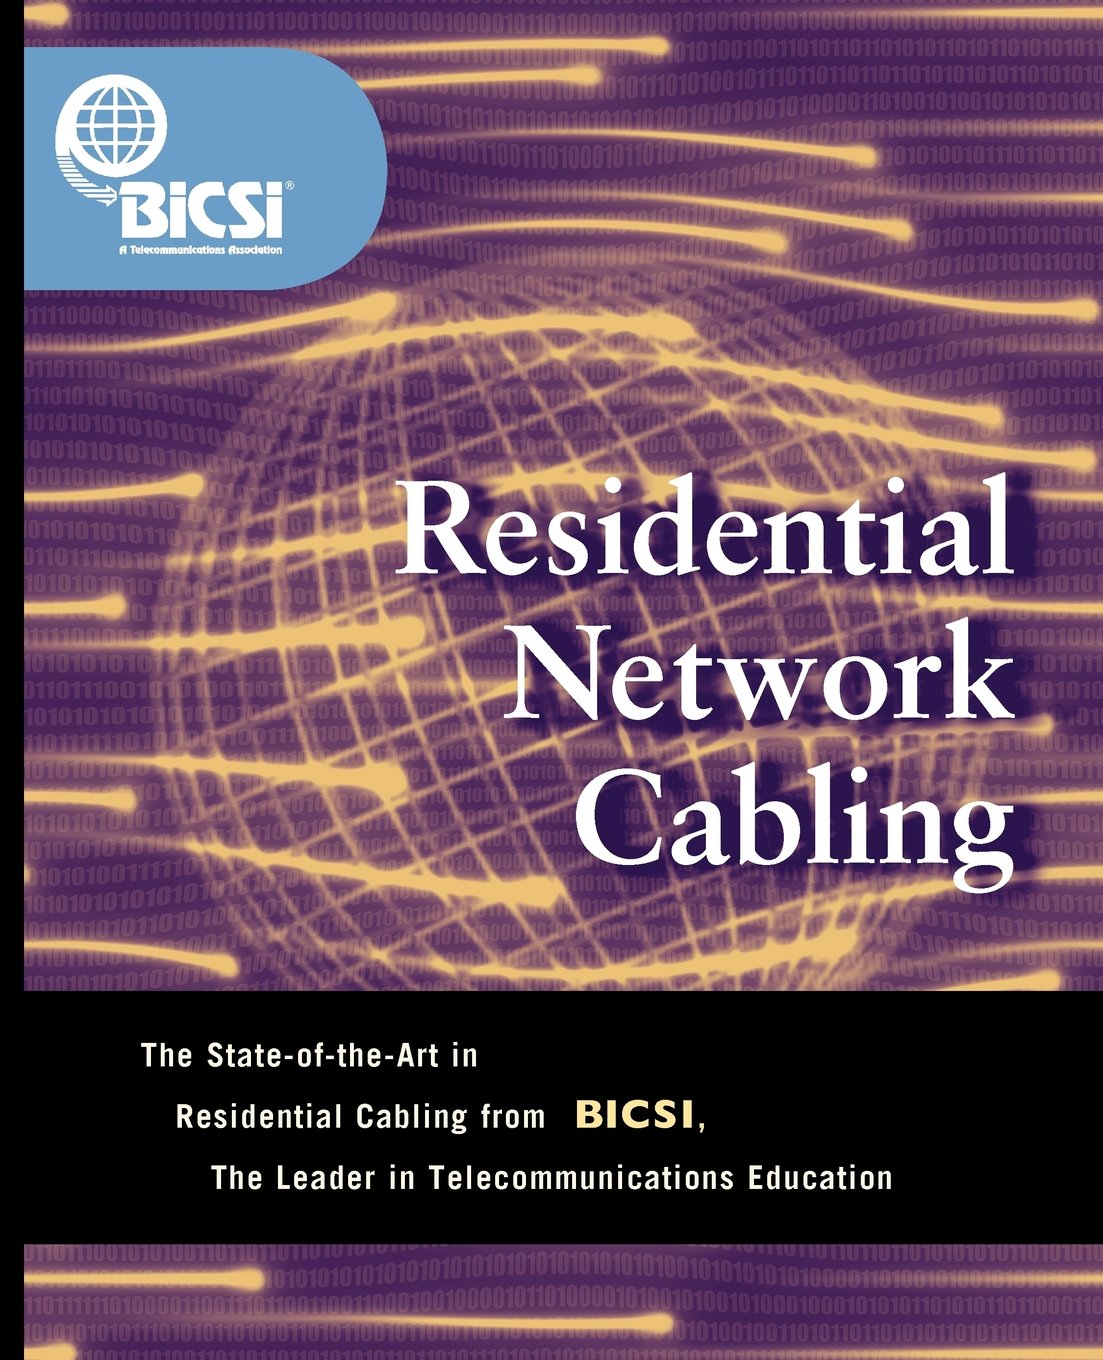 Residential Network Cabling: BICSI: 9780071382113: Books - Amazon.ca